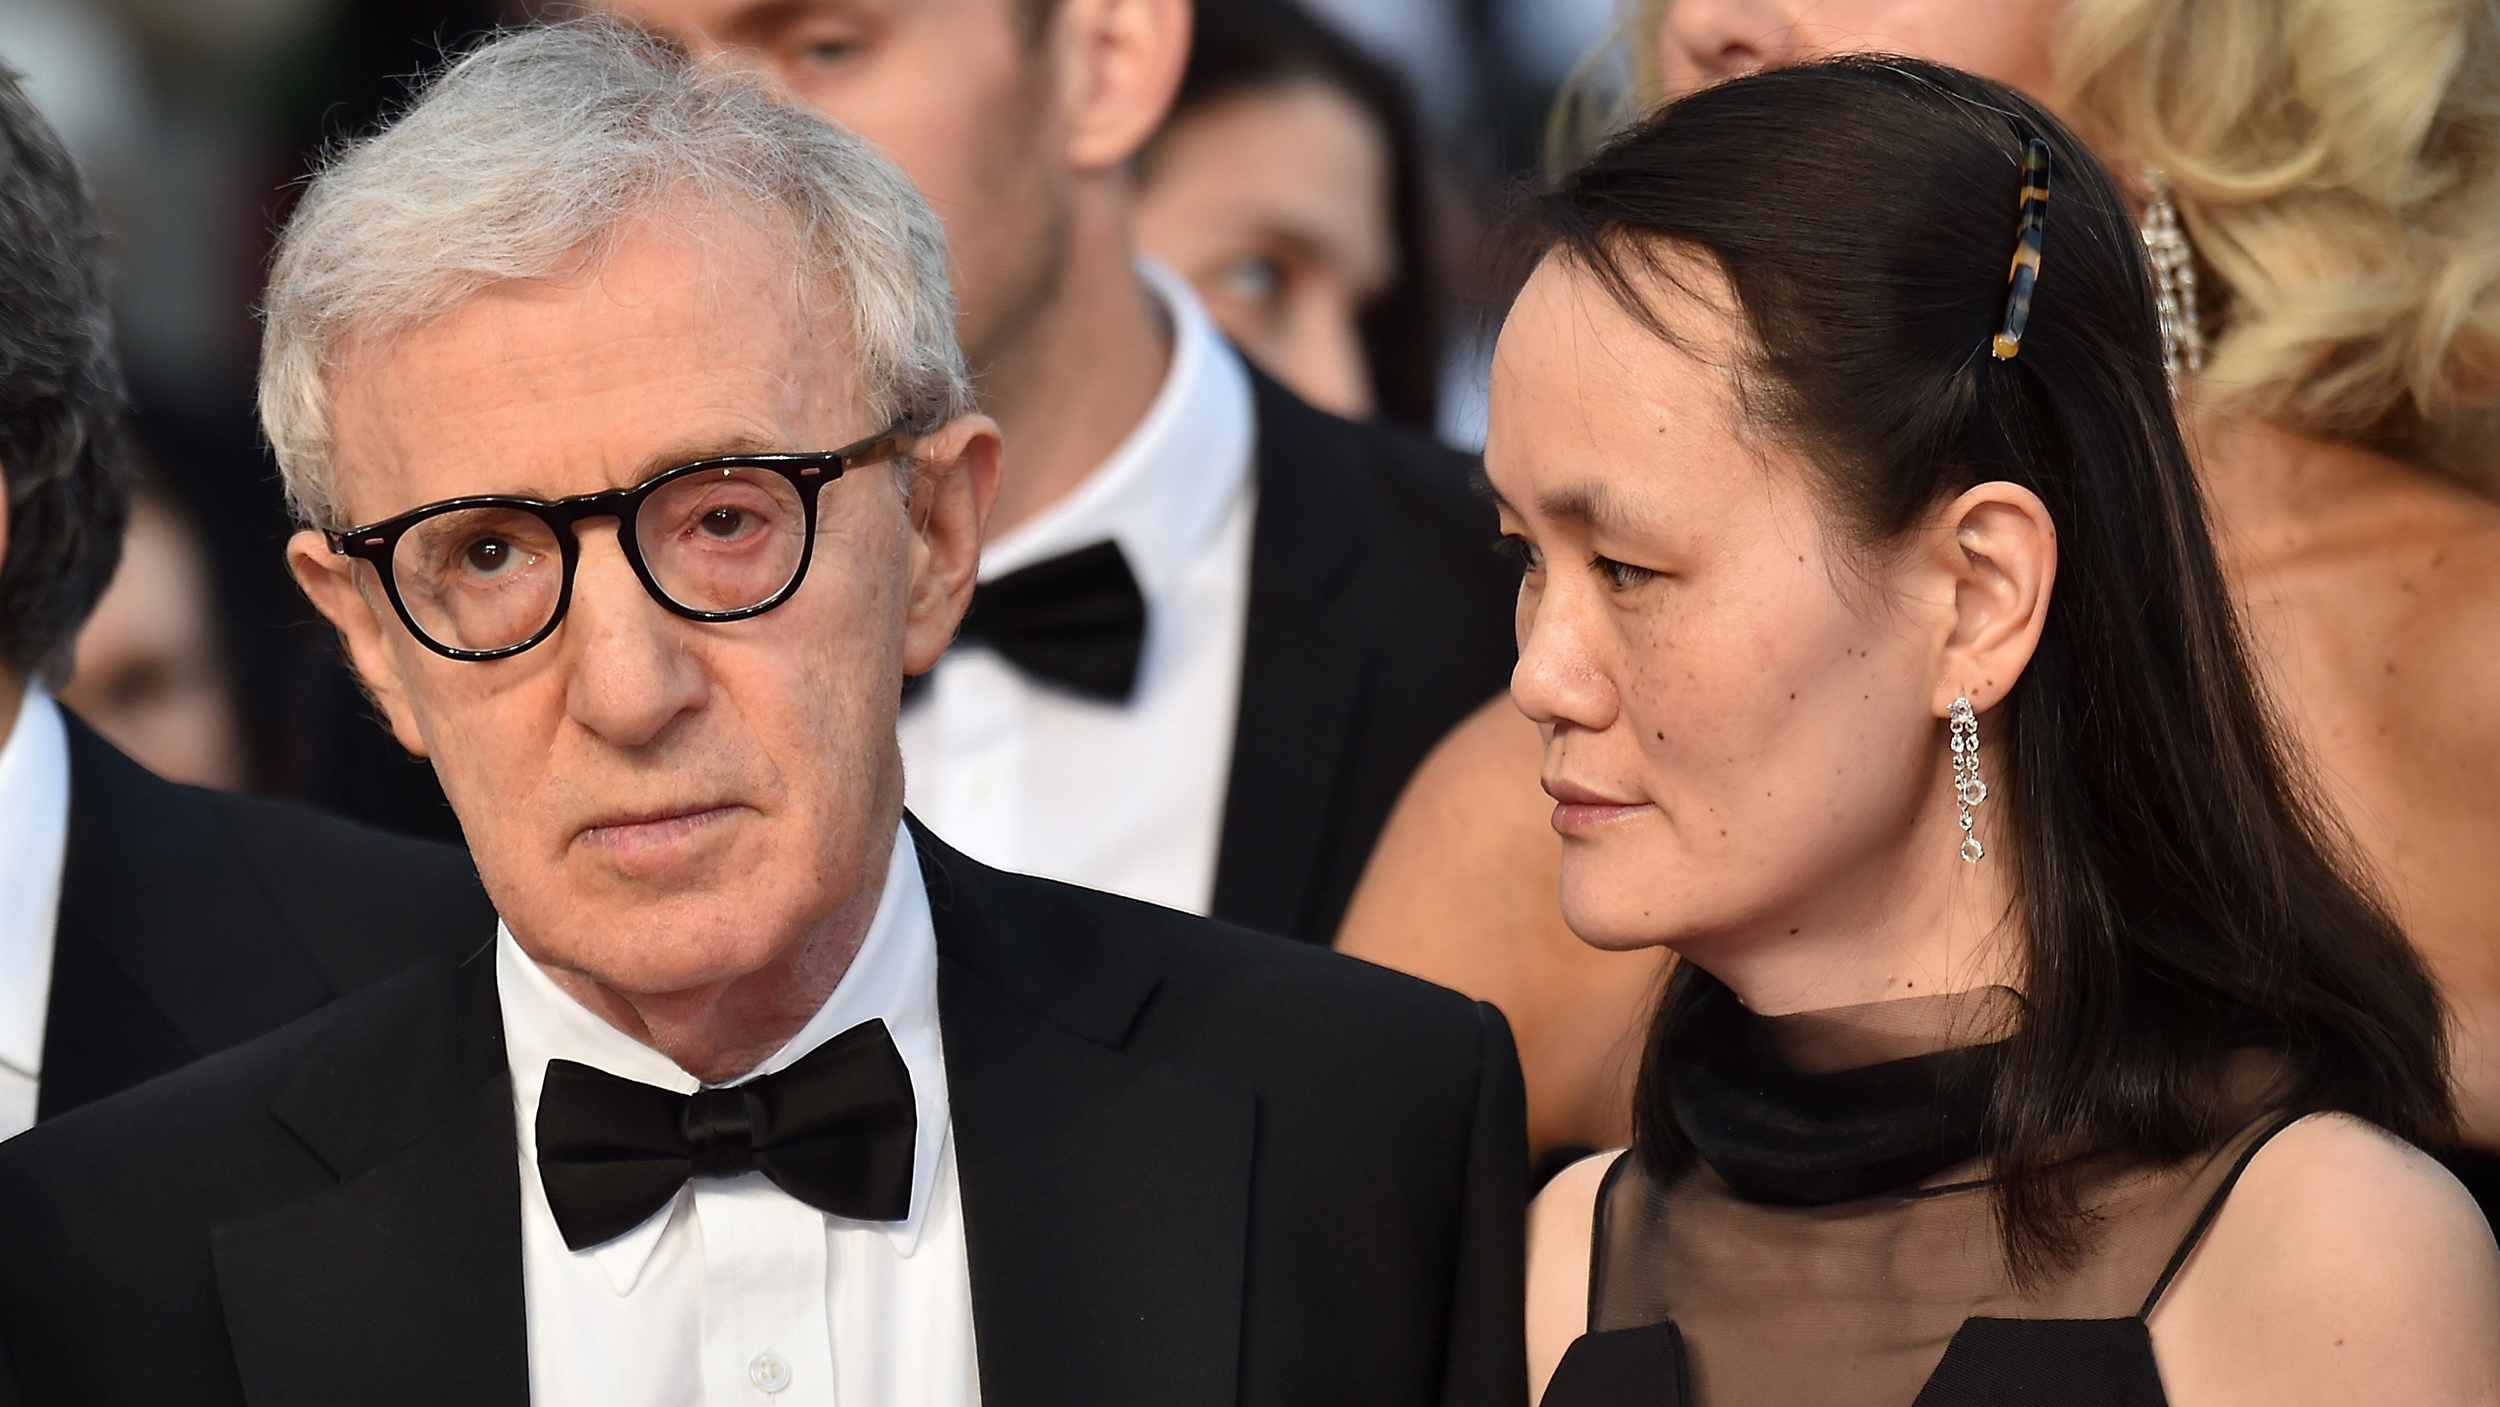 Woody Allen immune to criticism surrounding relationship with Soon-Yi Previn